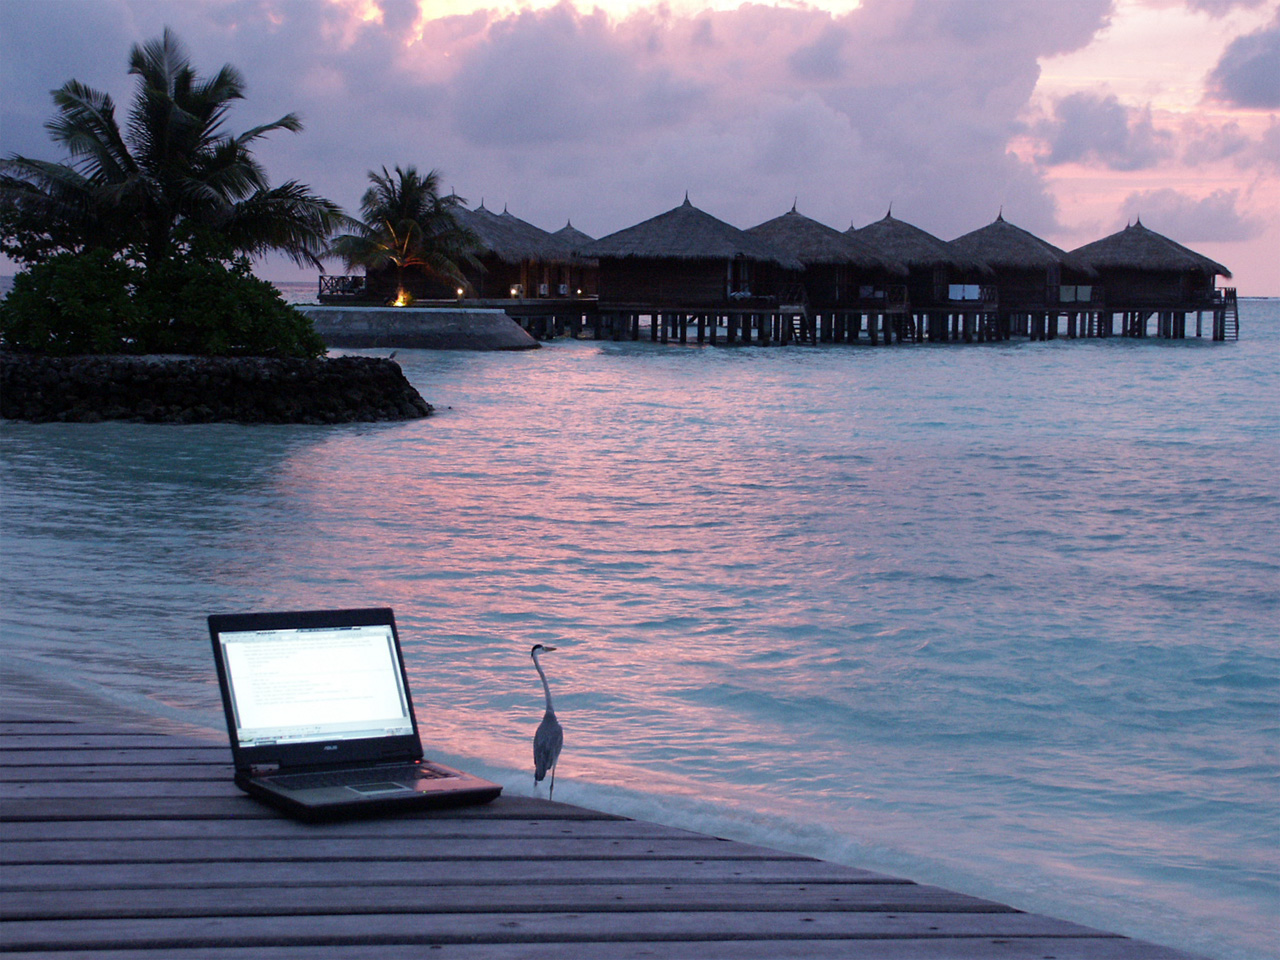 Want to become a digital nomad and work from here? ... photo by CC user novecentino on Flickr